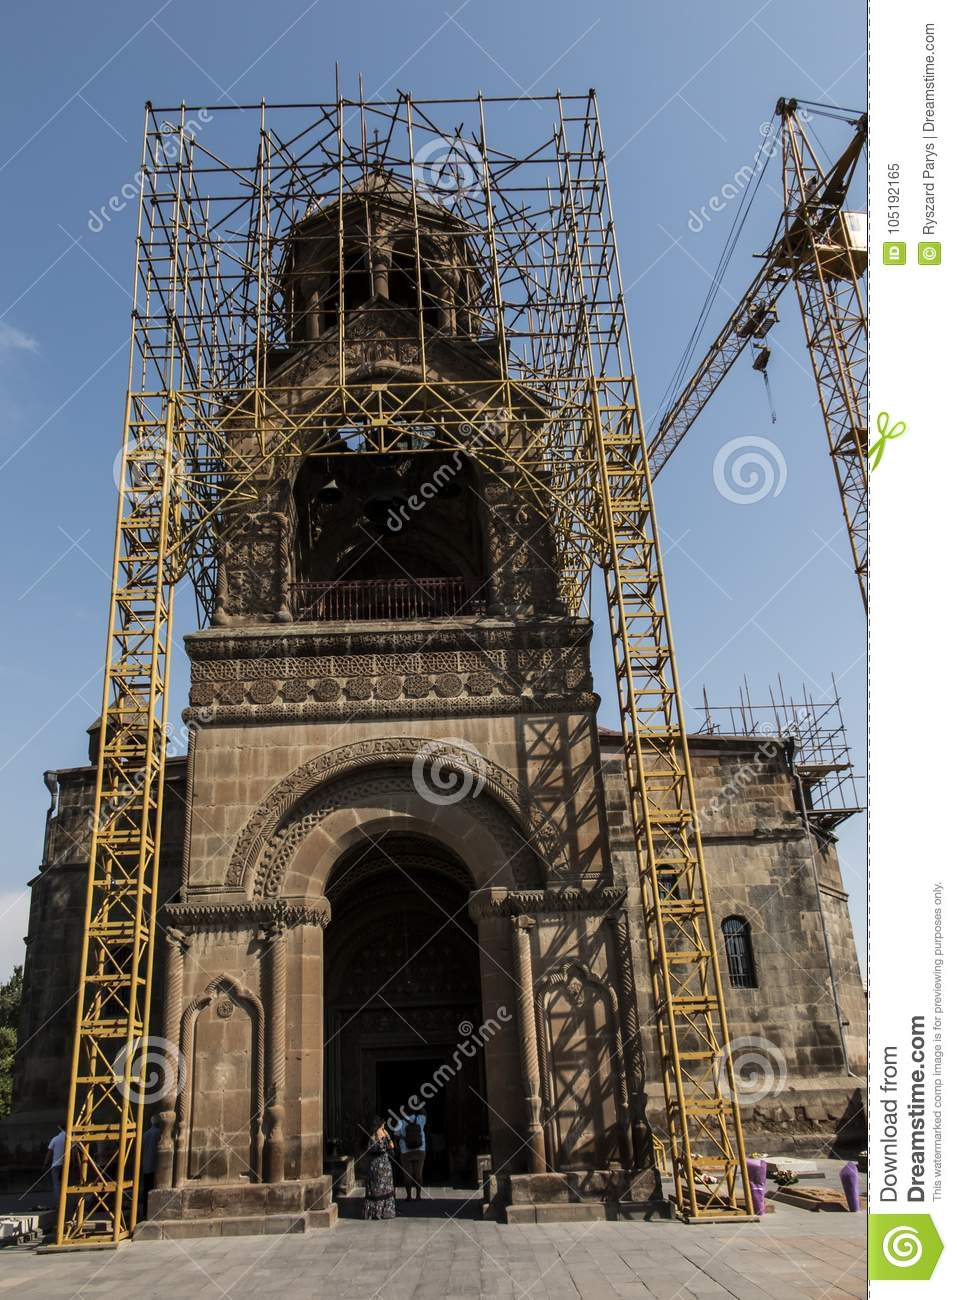 Repair Of The Tower Of The Oldest Cathedral In The World